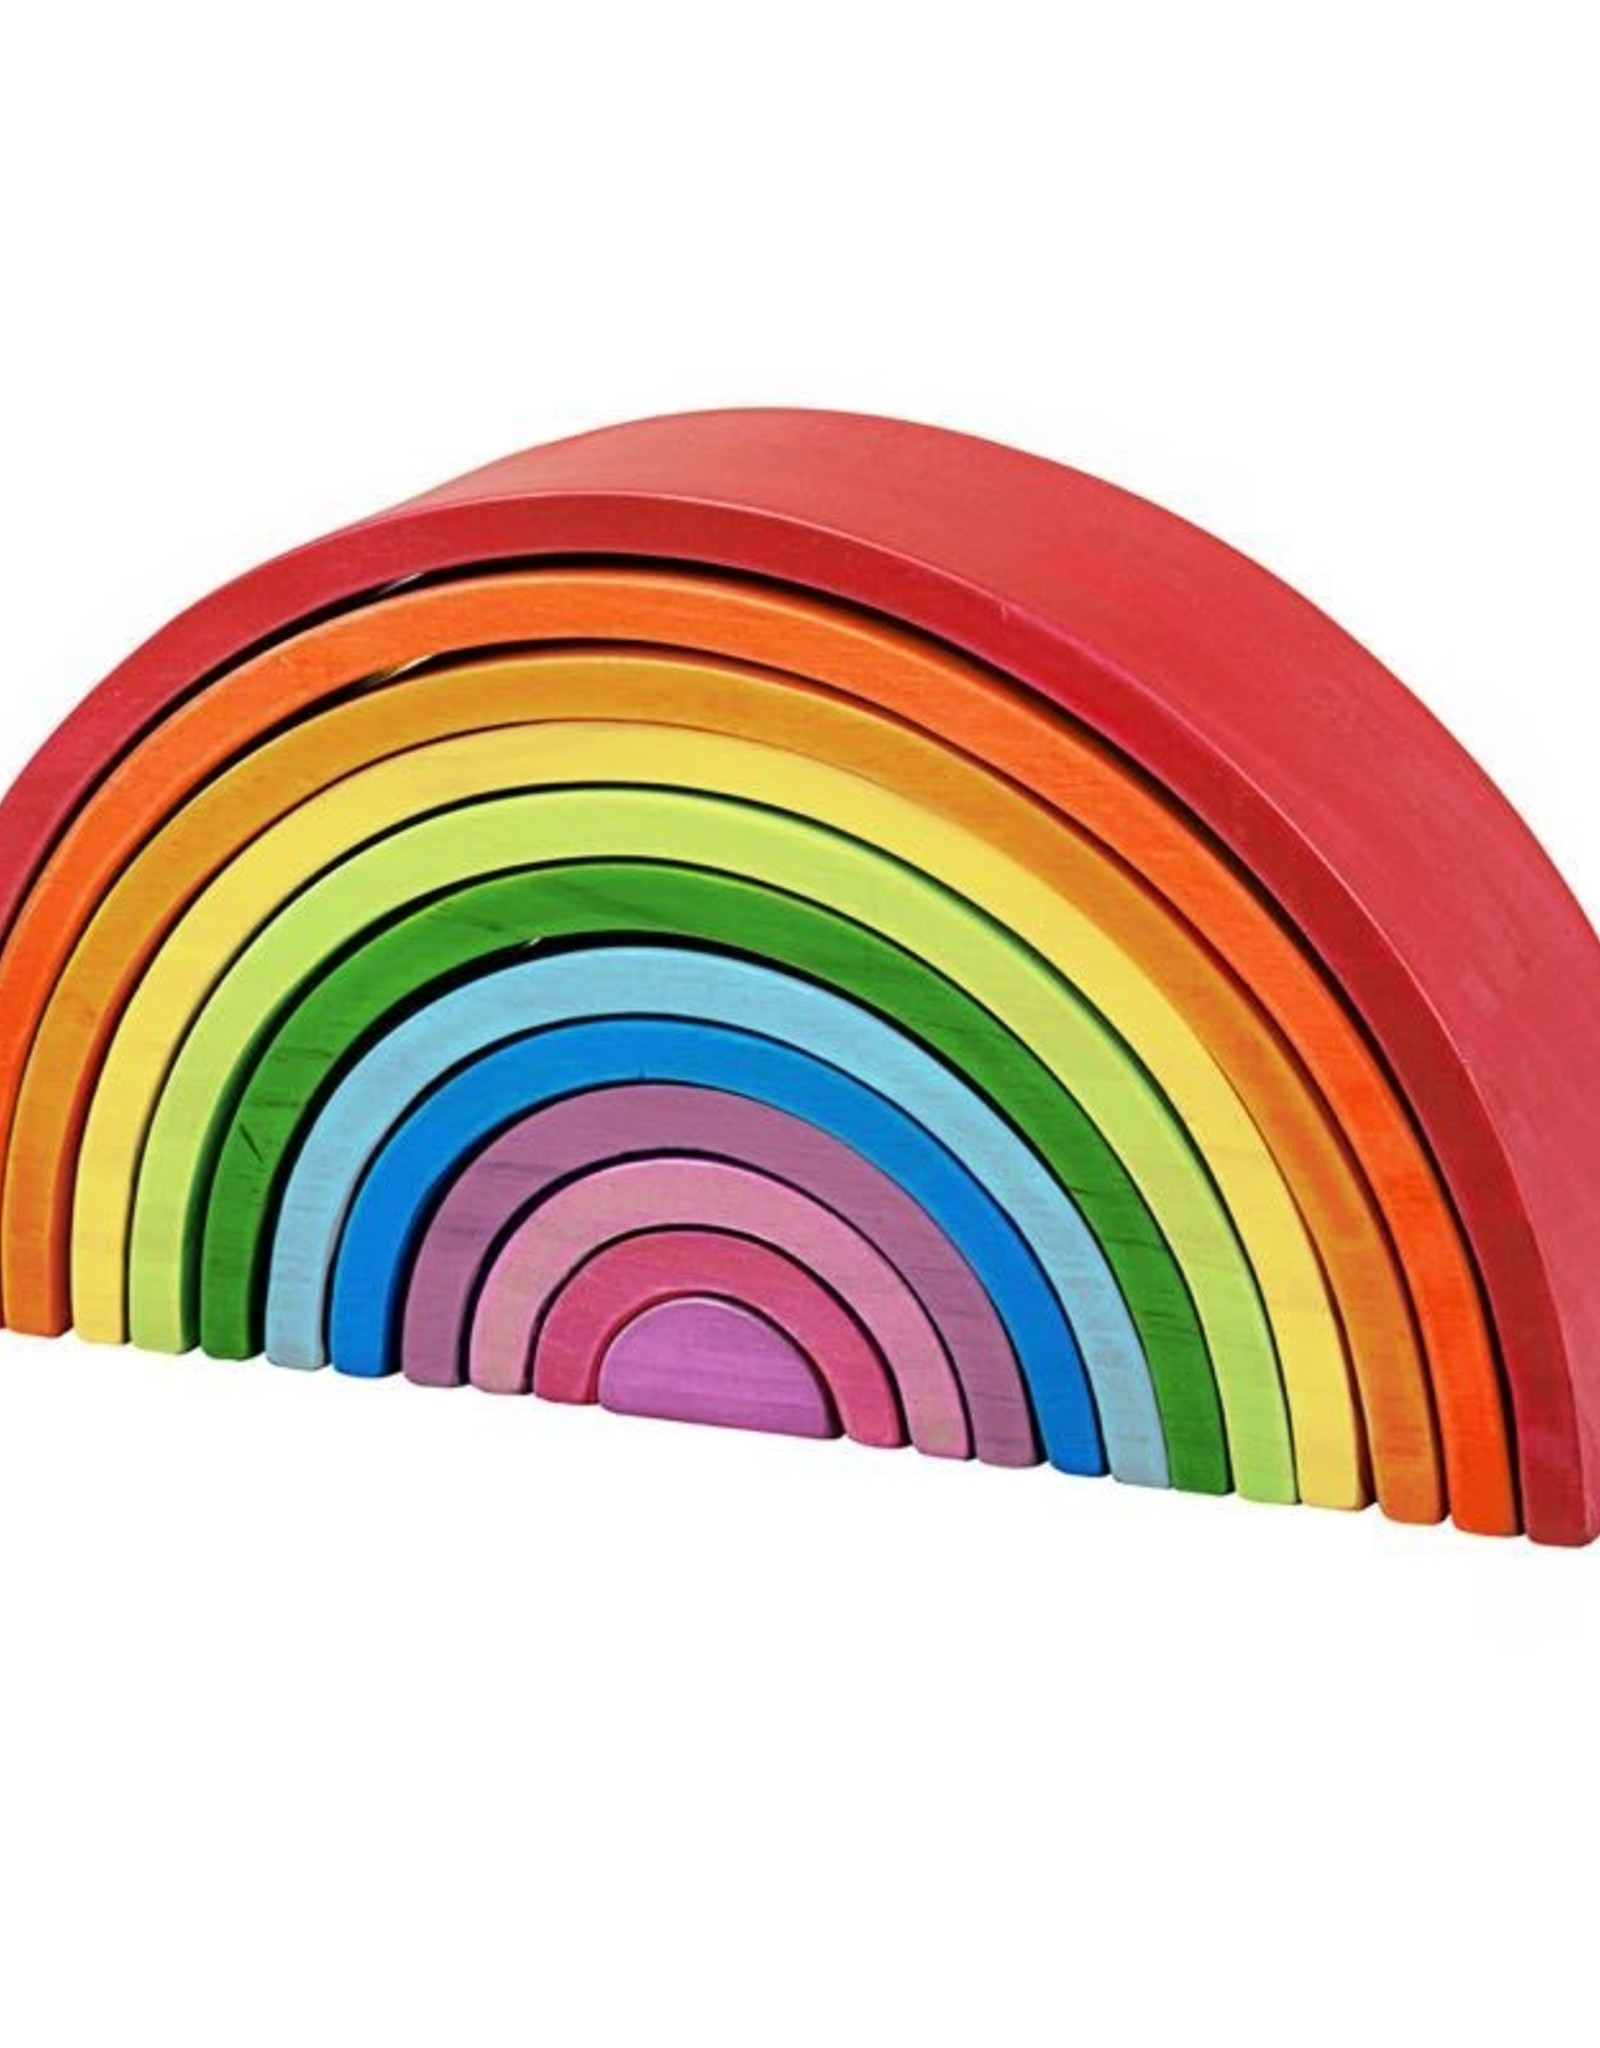 Big Jigs Wooden Stacking Rainbow - Large